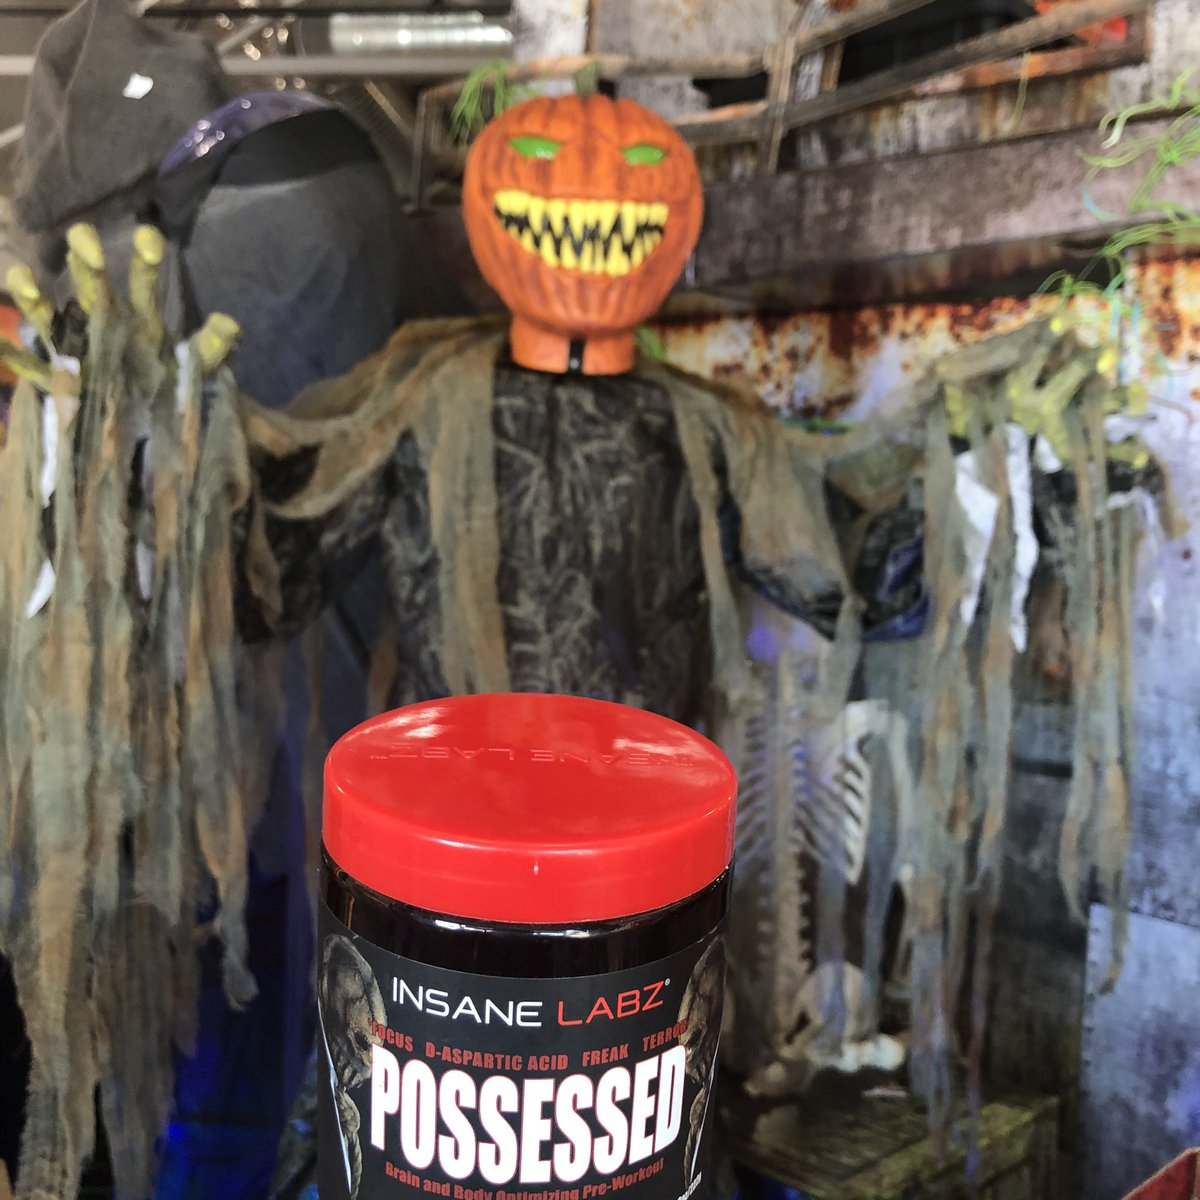 Feel as if you are #possessed for your training and become supernatural with the best supplements on Earth! JOIN THE ASYLUM! Use code ALIVE25 at http://www.insanelabz.com to save 50% off of all orders and be sure to follow @insanelabz! #jointheasylum #fitnessmotivation #fitlifepic.twitter.com/LXNKM6w4Q6